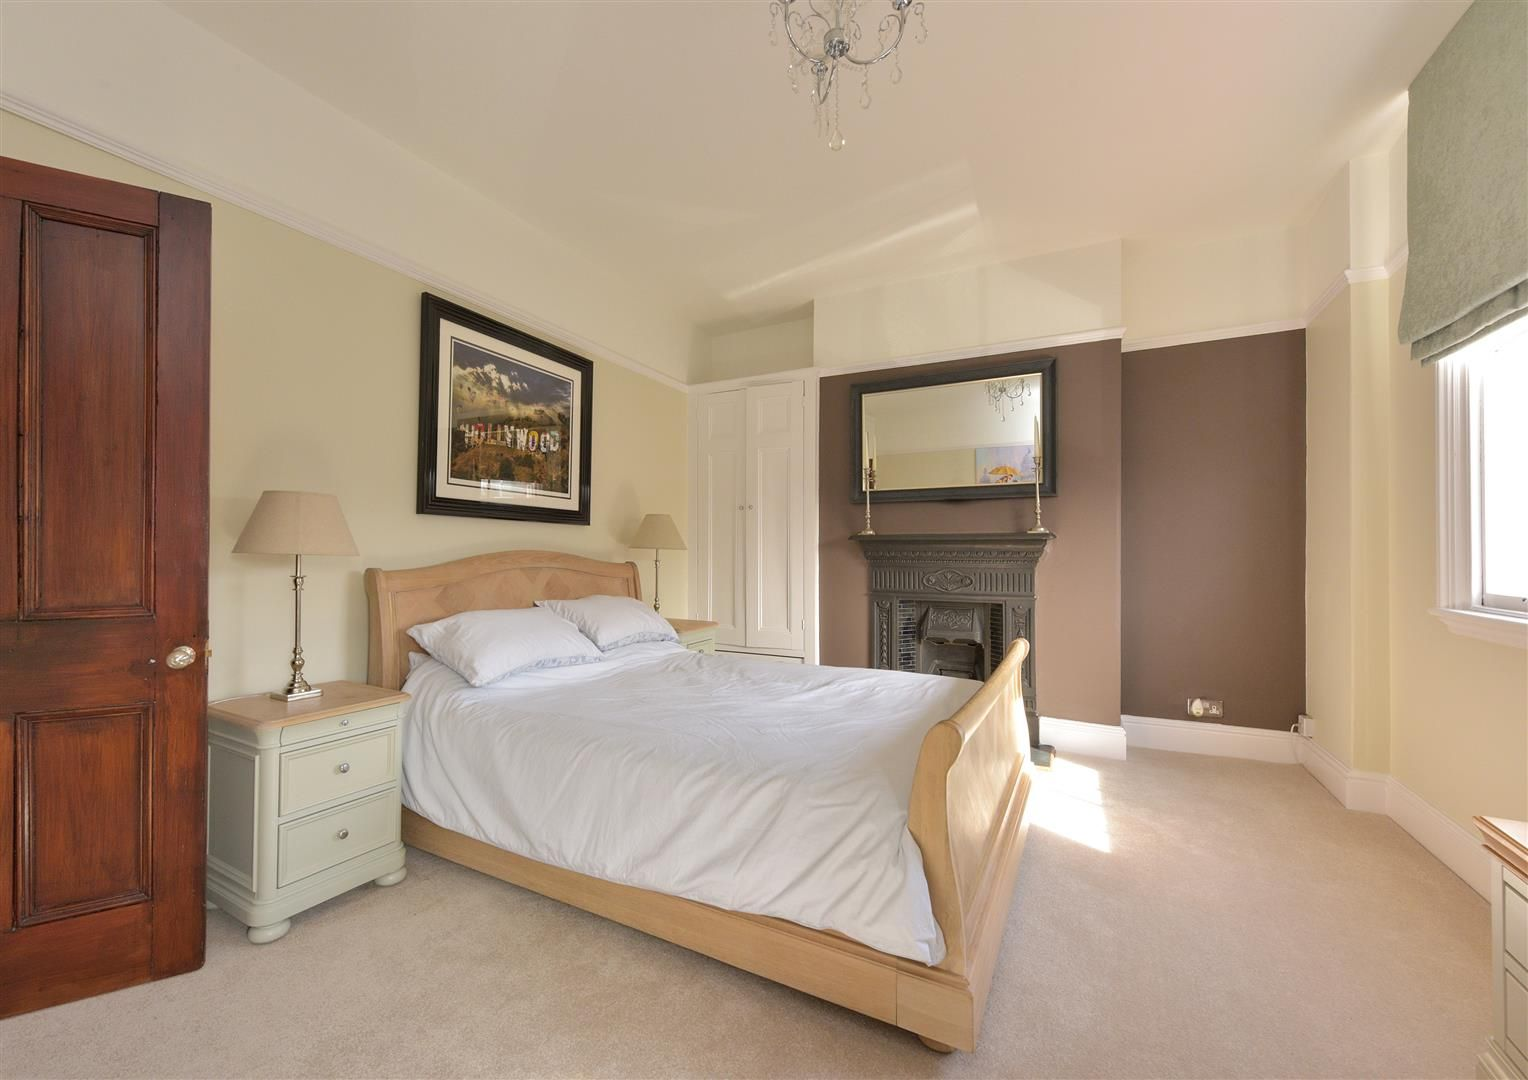 4 bed terraced for sale in Old Quarter  - Property Image 10